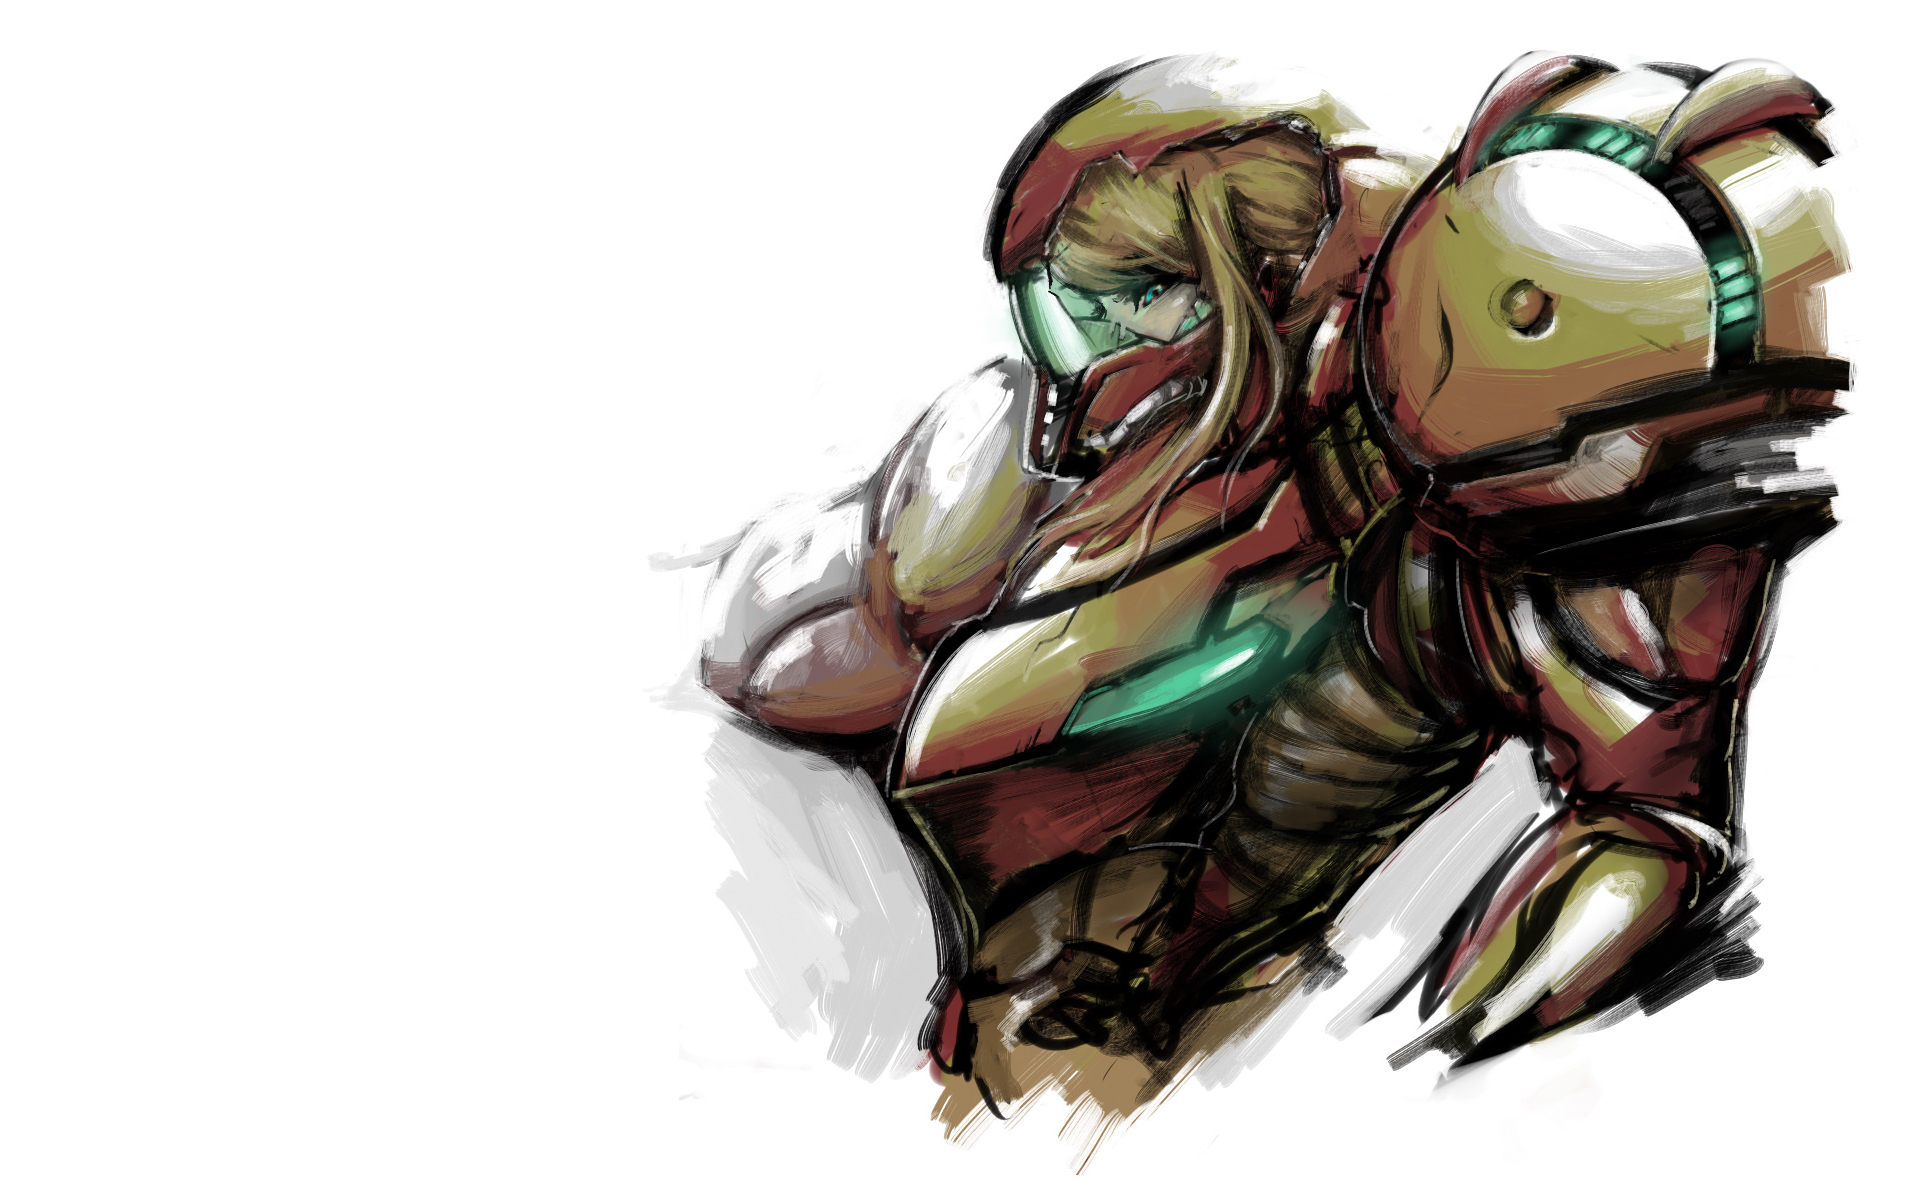 fantasy samus aran HD Wallpaper